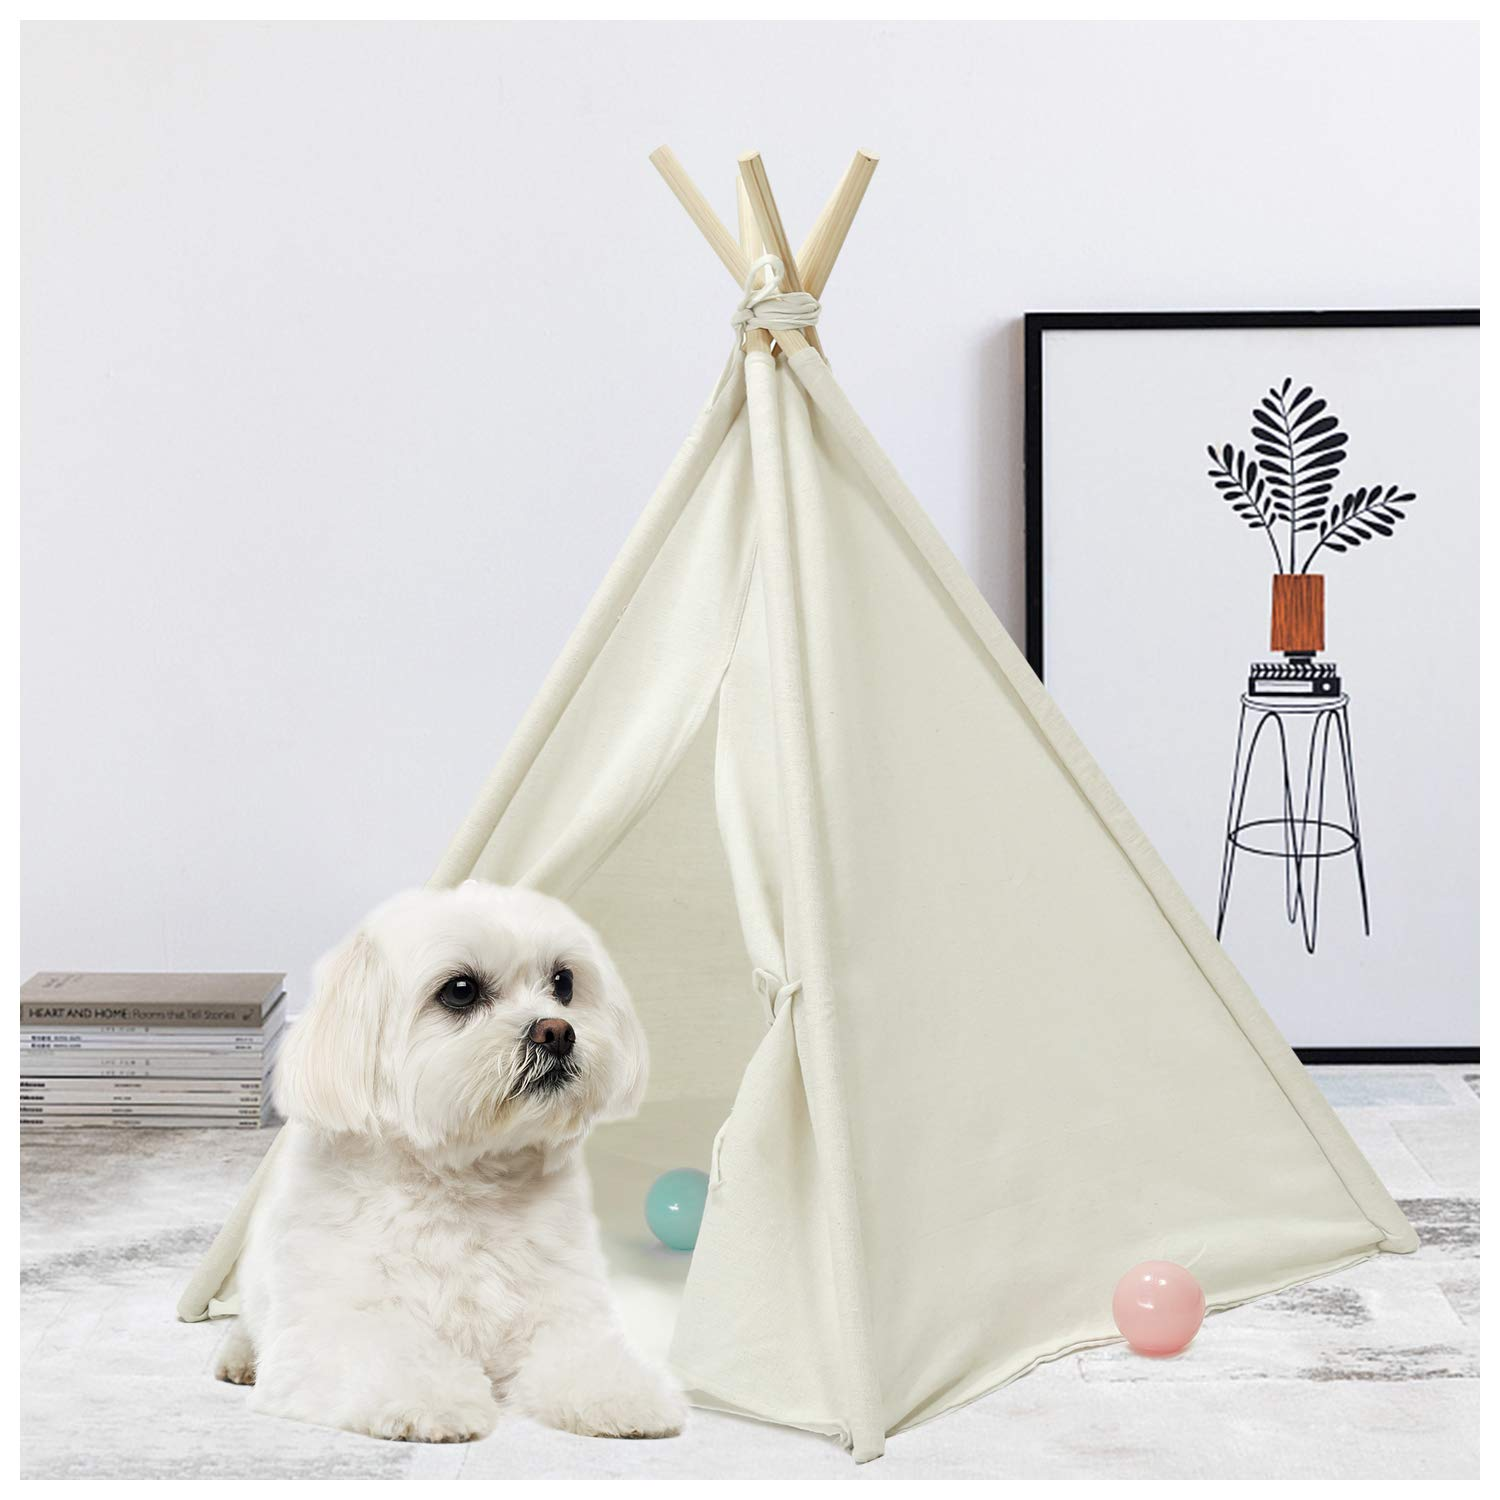 UKadou Pet Teepee Tent for Dogs, Cute Dog Teepee Tent Bed, Modern Pet Teepee Tent House with Floor,Puppy beds for Small Dogs, Portable Indoor Dog House Cat Tent Bed Tipi, Rabbits Pet House 24Inch by UKadou